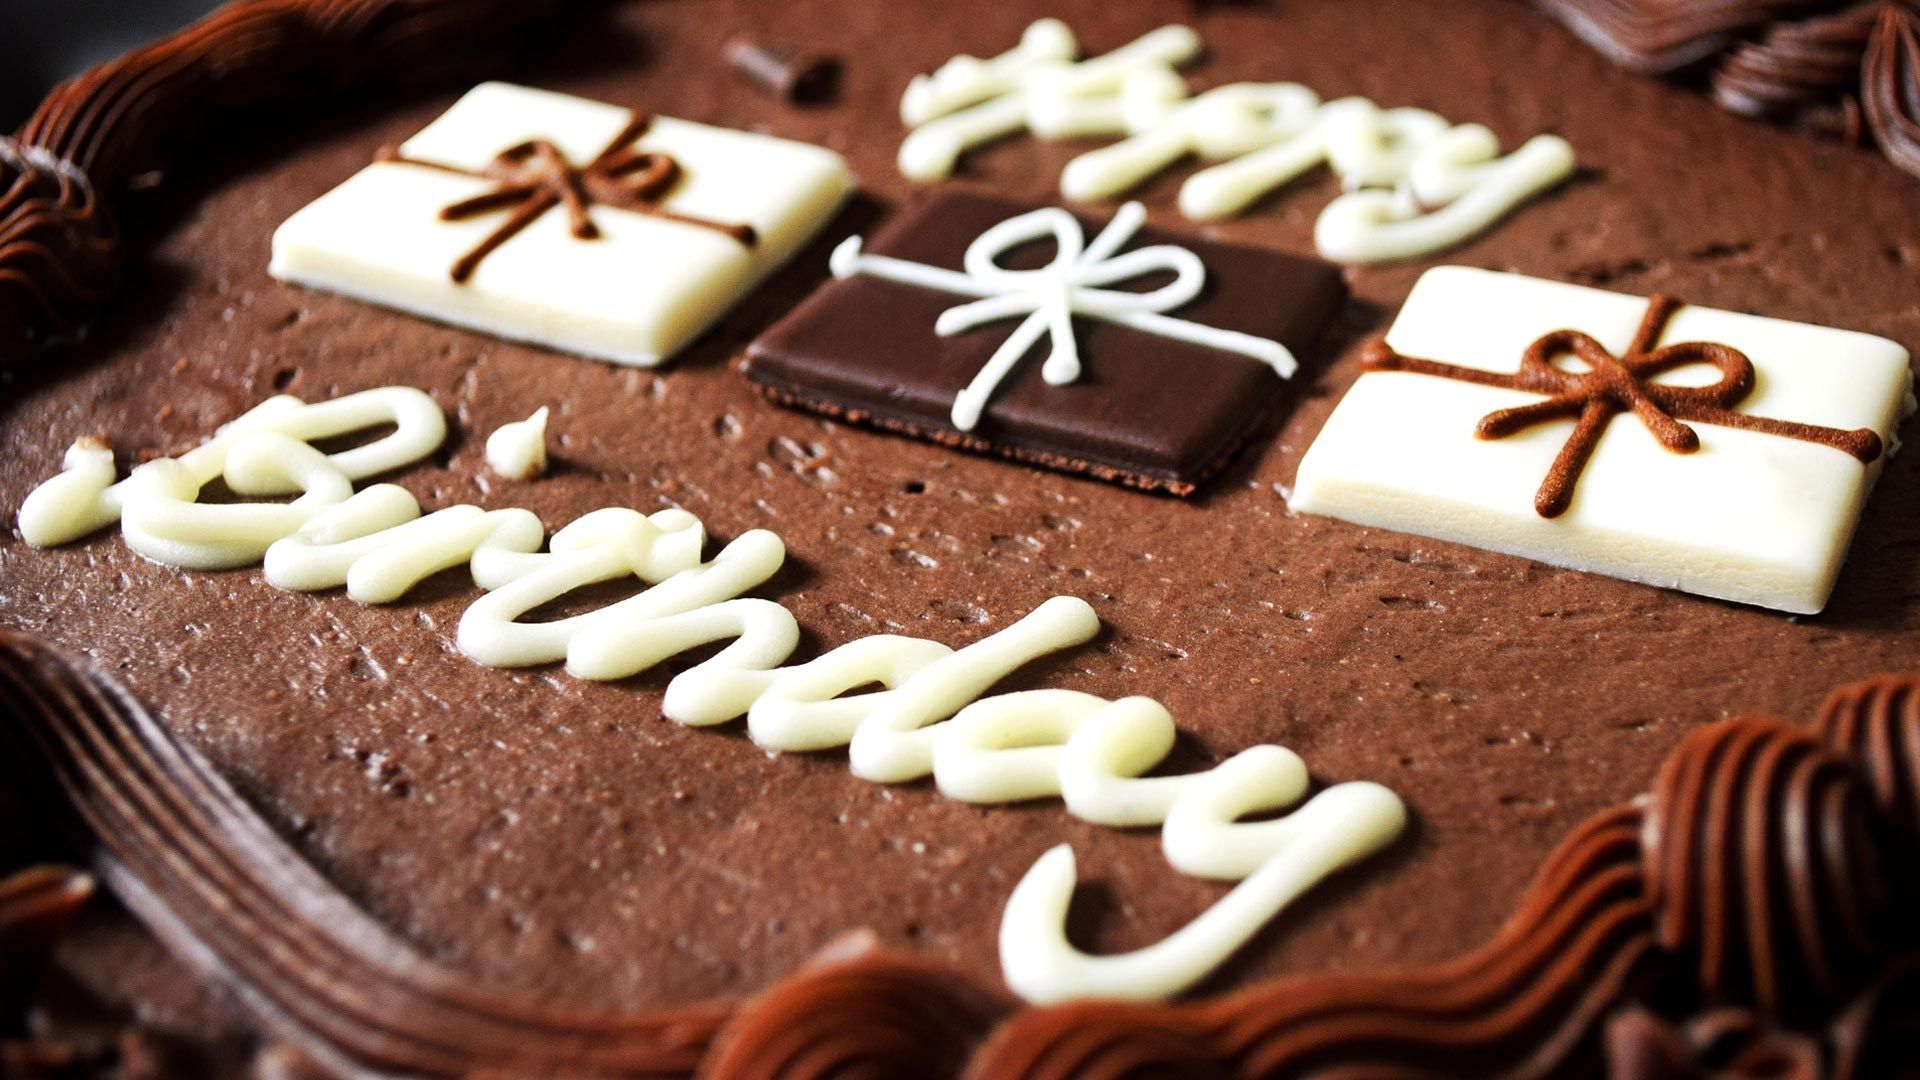 happy birthday chocolate cake wallpaper hd desktop | ololoshenka